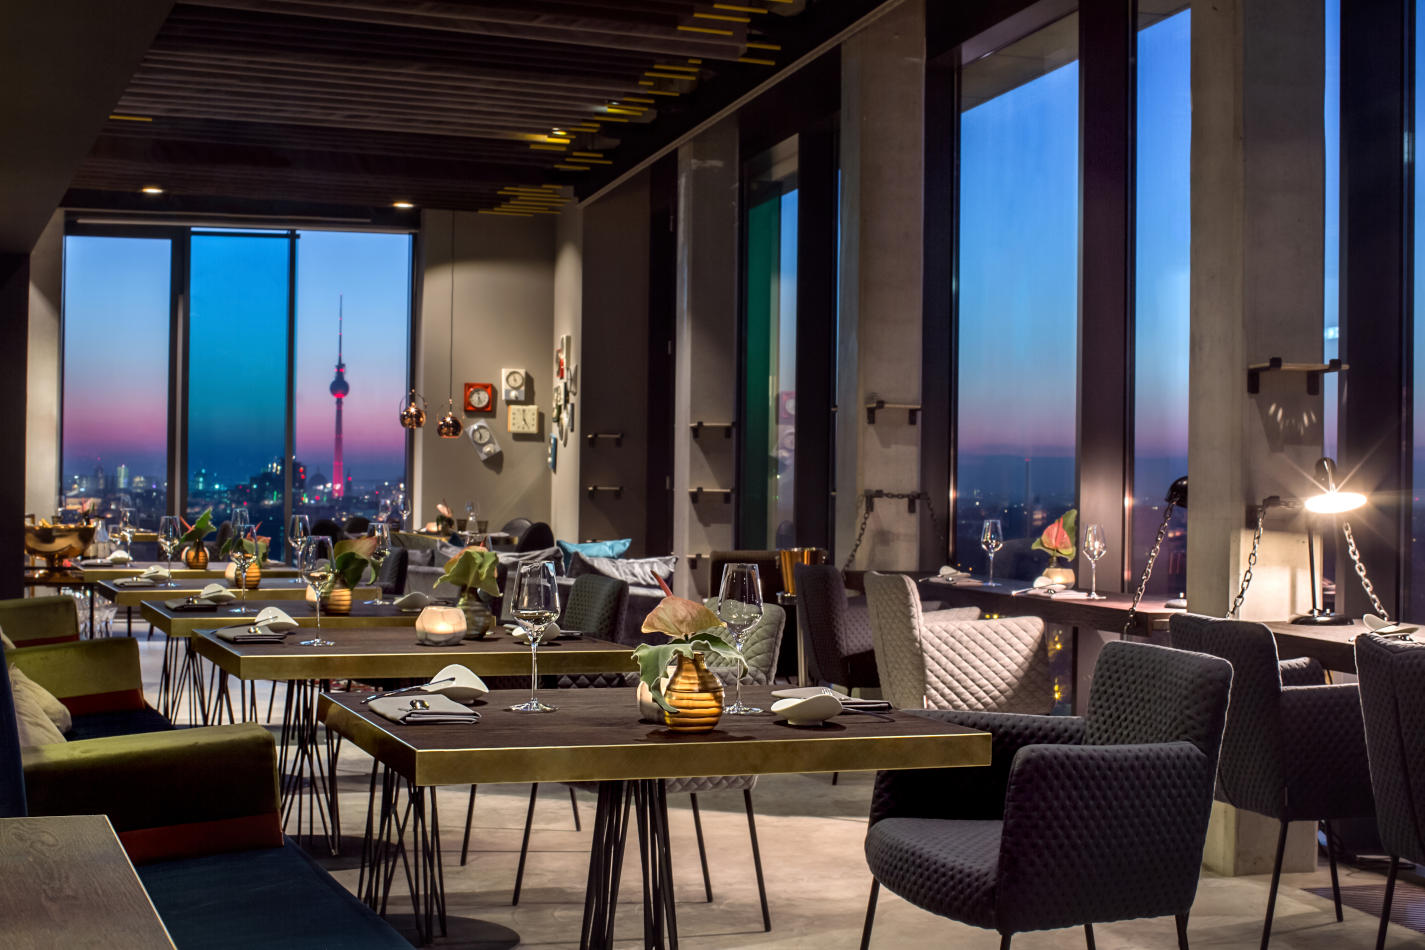 Restaurant Skykitchen: Where fine dining meets the down-to-earth attitude of Berlin, Discover Germany Magazine